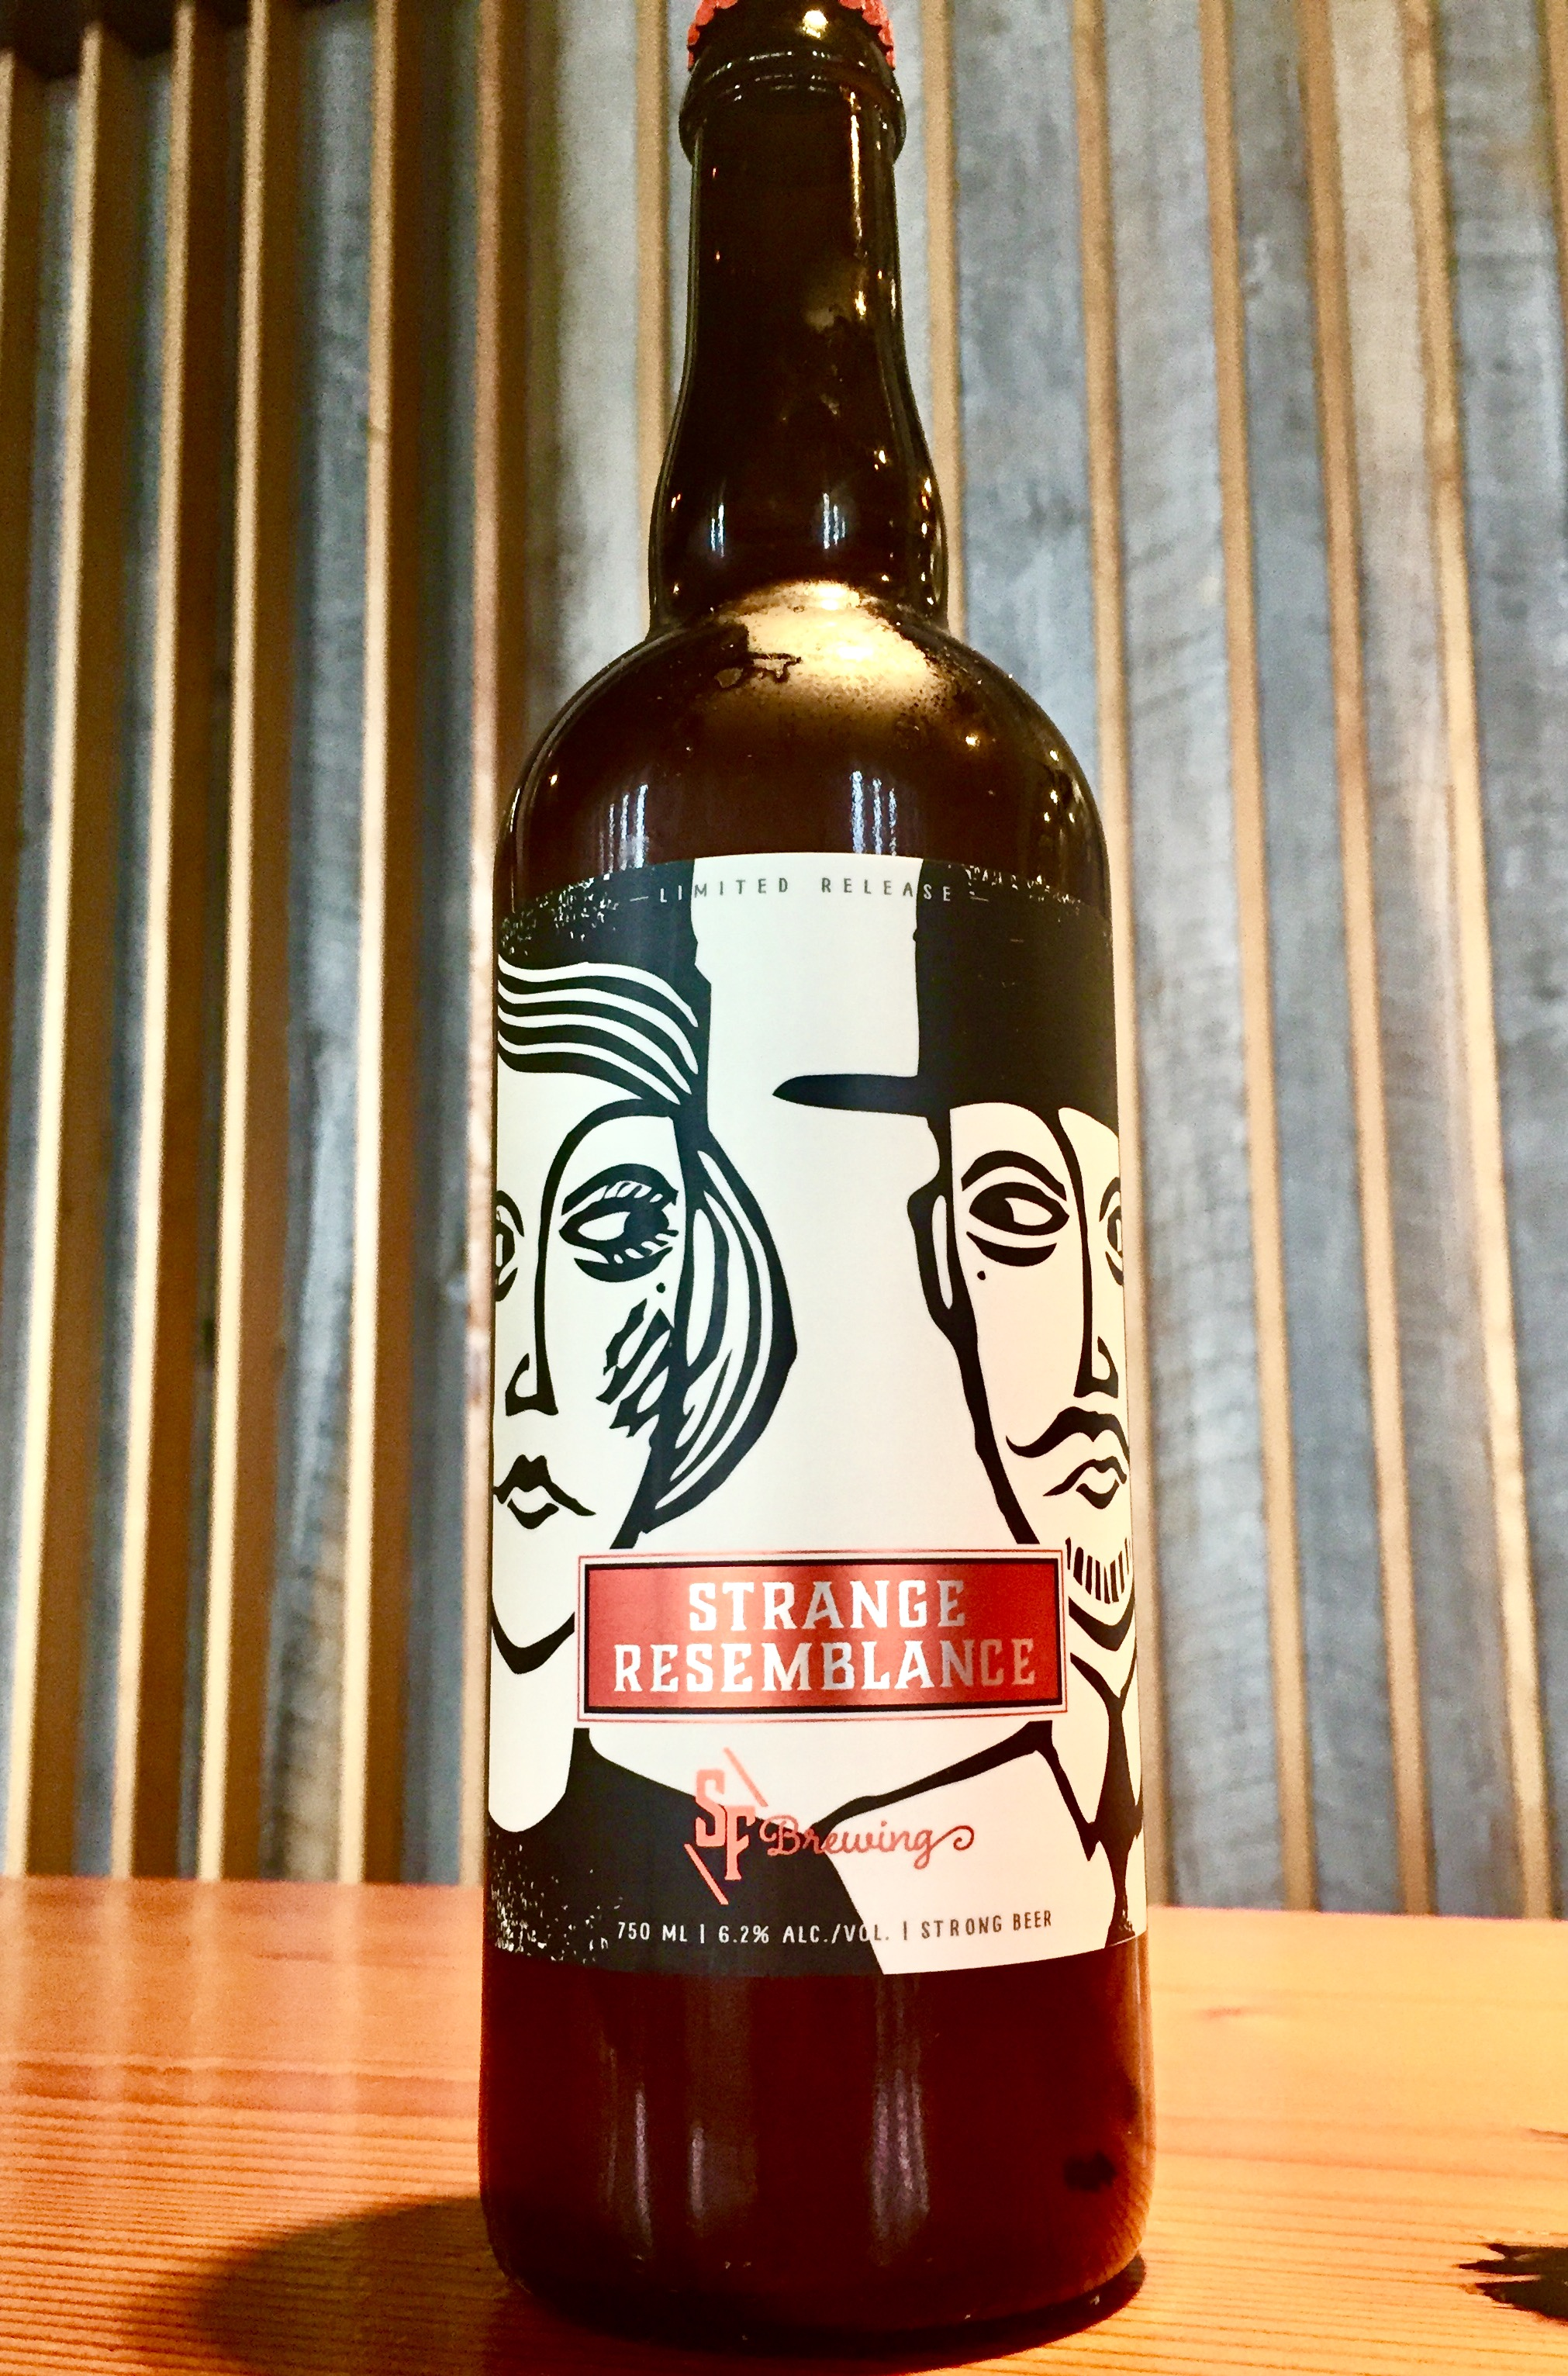 Strange resemblance strange fellows brewing craft beer for Strange craft beer company